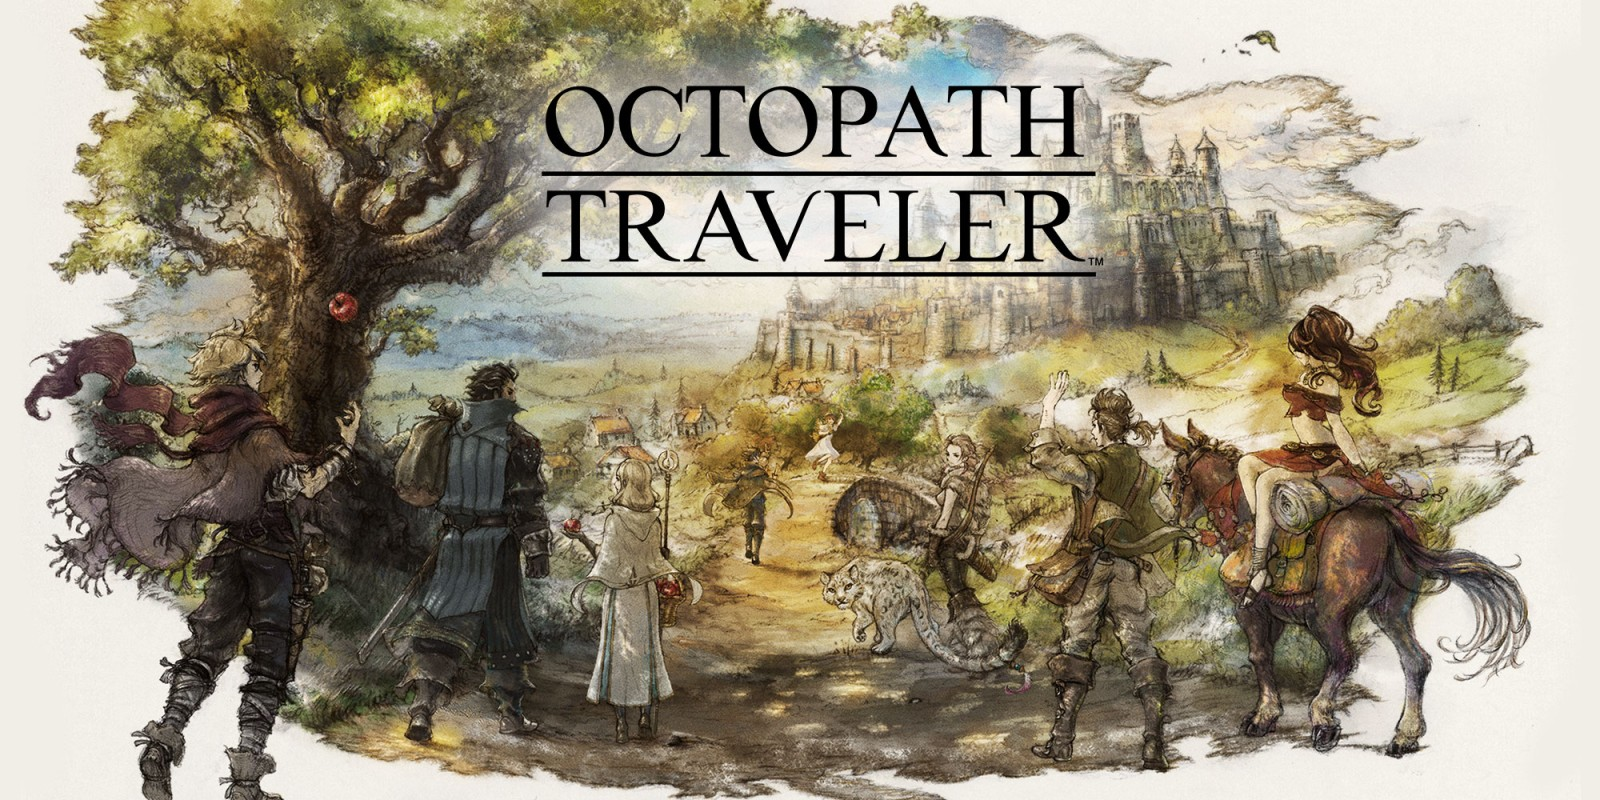 Octopath Traveler E3 trailer